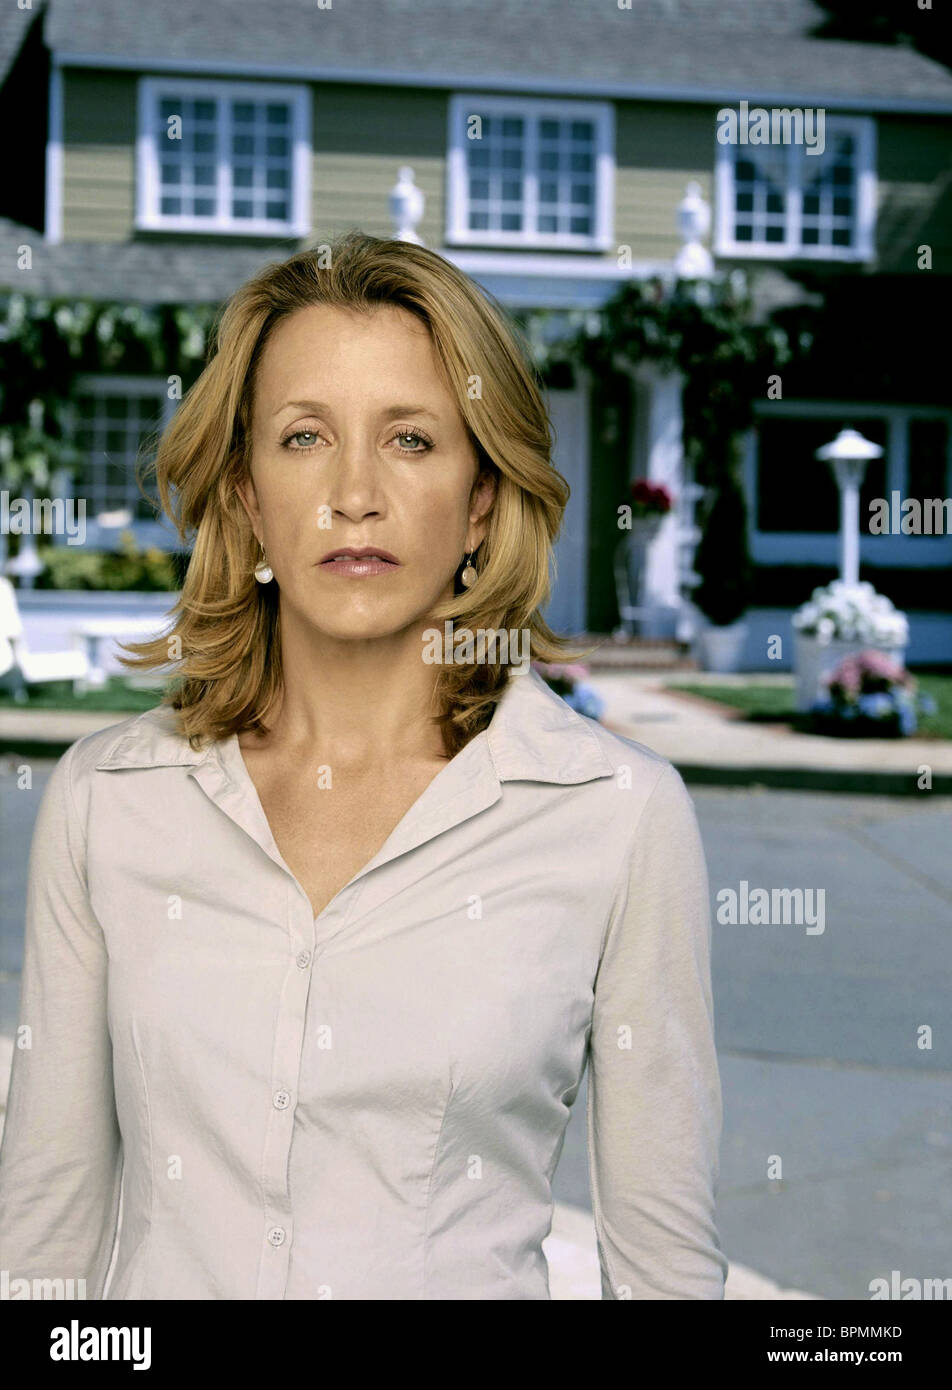 8f9dbbaeb0c FELICITY HUFFMAN DESPERATE HOUSEWIVES (2004 Stock Photo: 31188065 ...